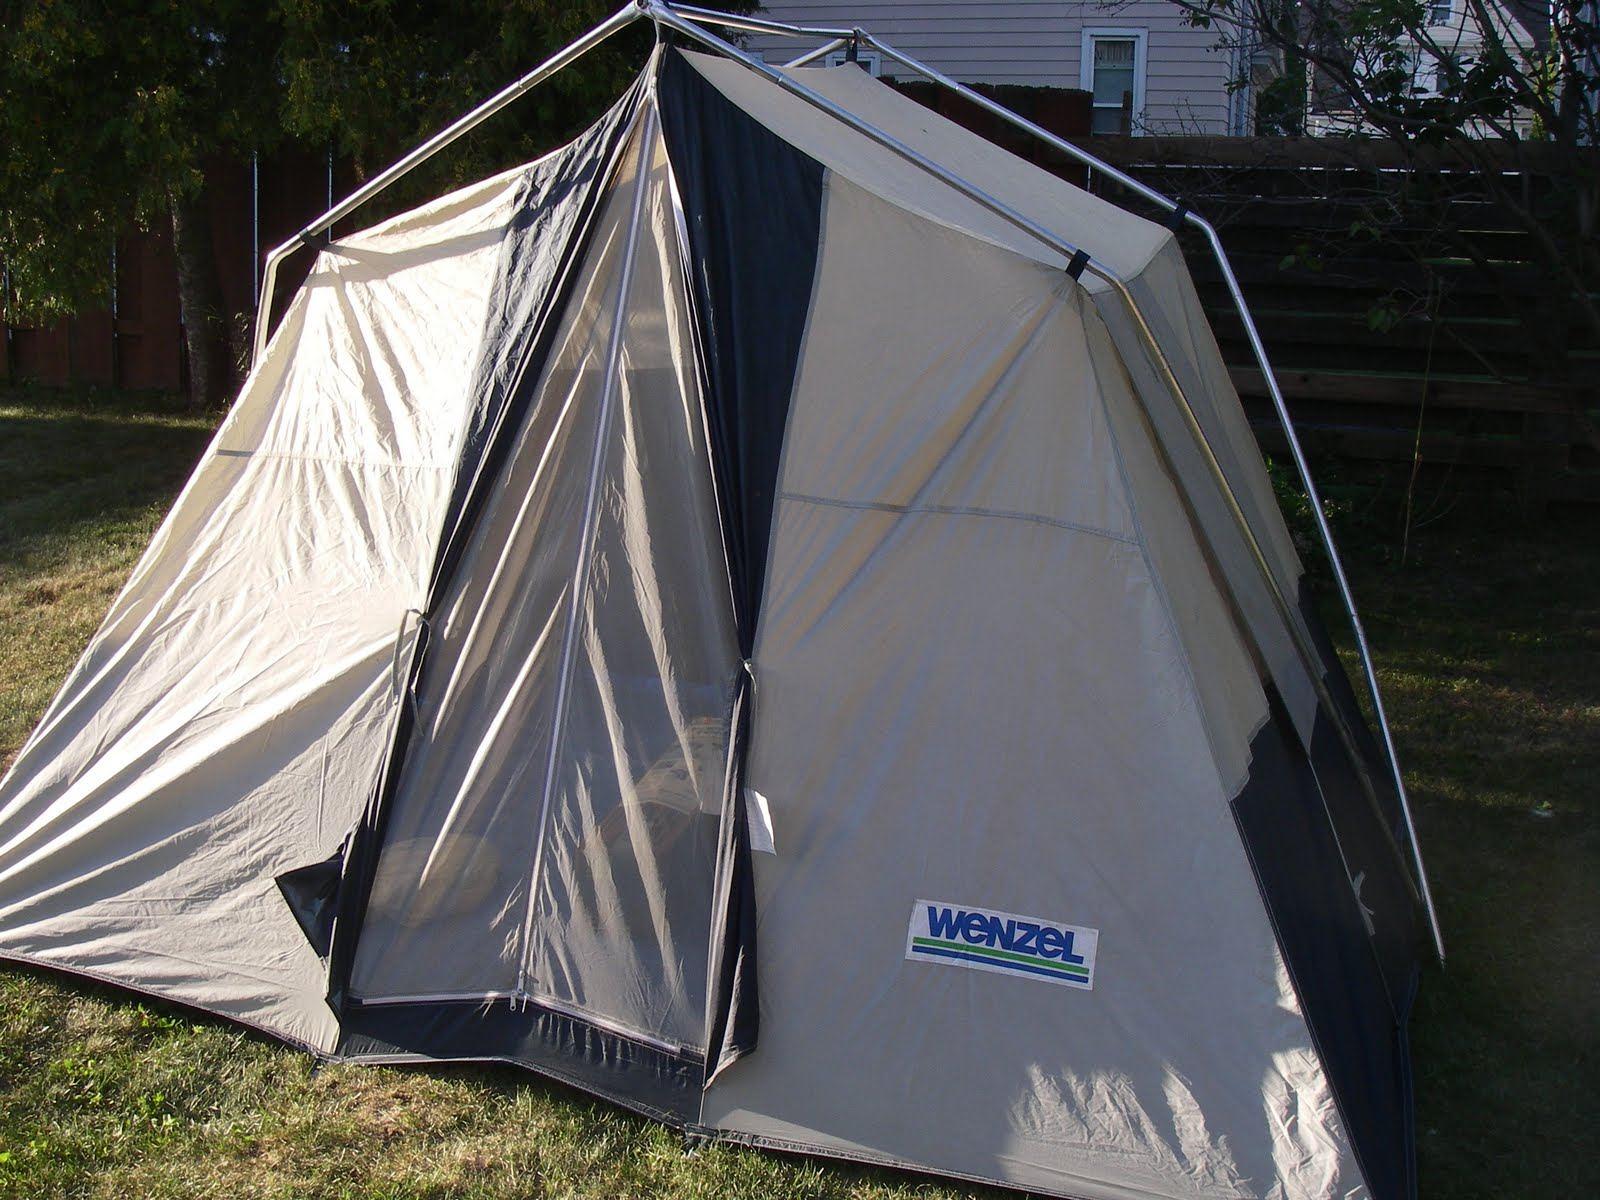 Wenzel 3 Person Tent & May The Forest Be With You: Wenzel 3 Person Tent